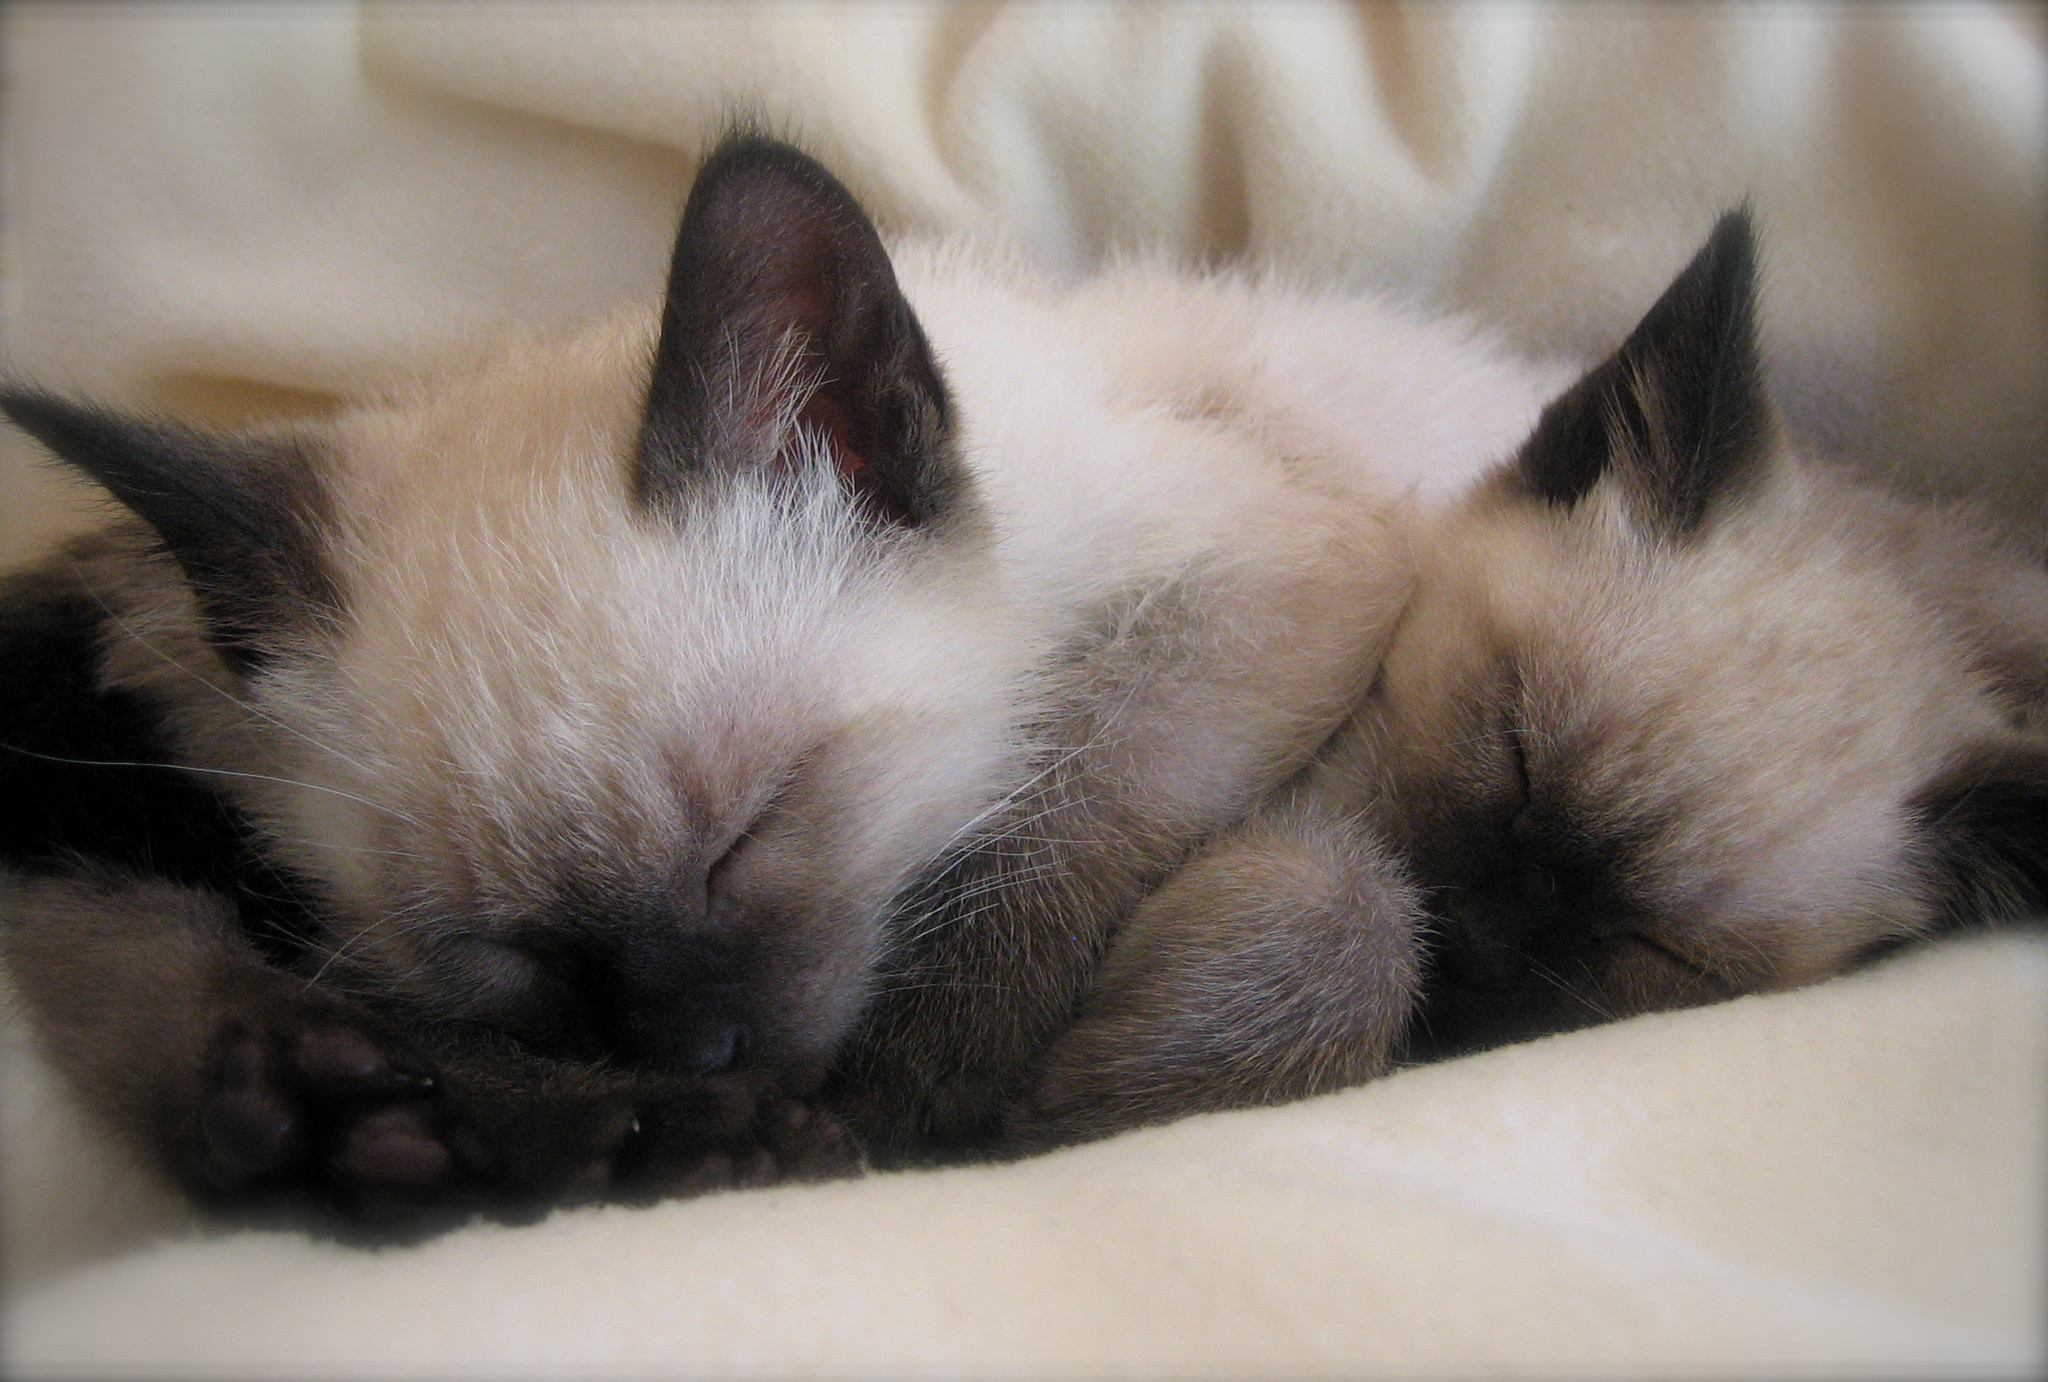 Cute White Kittens With Blue Eyes Wallpaper Siamese Cat Wallpaper 183 ①